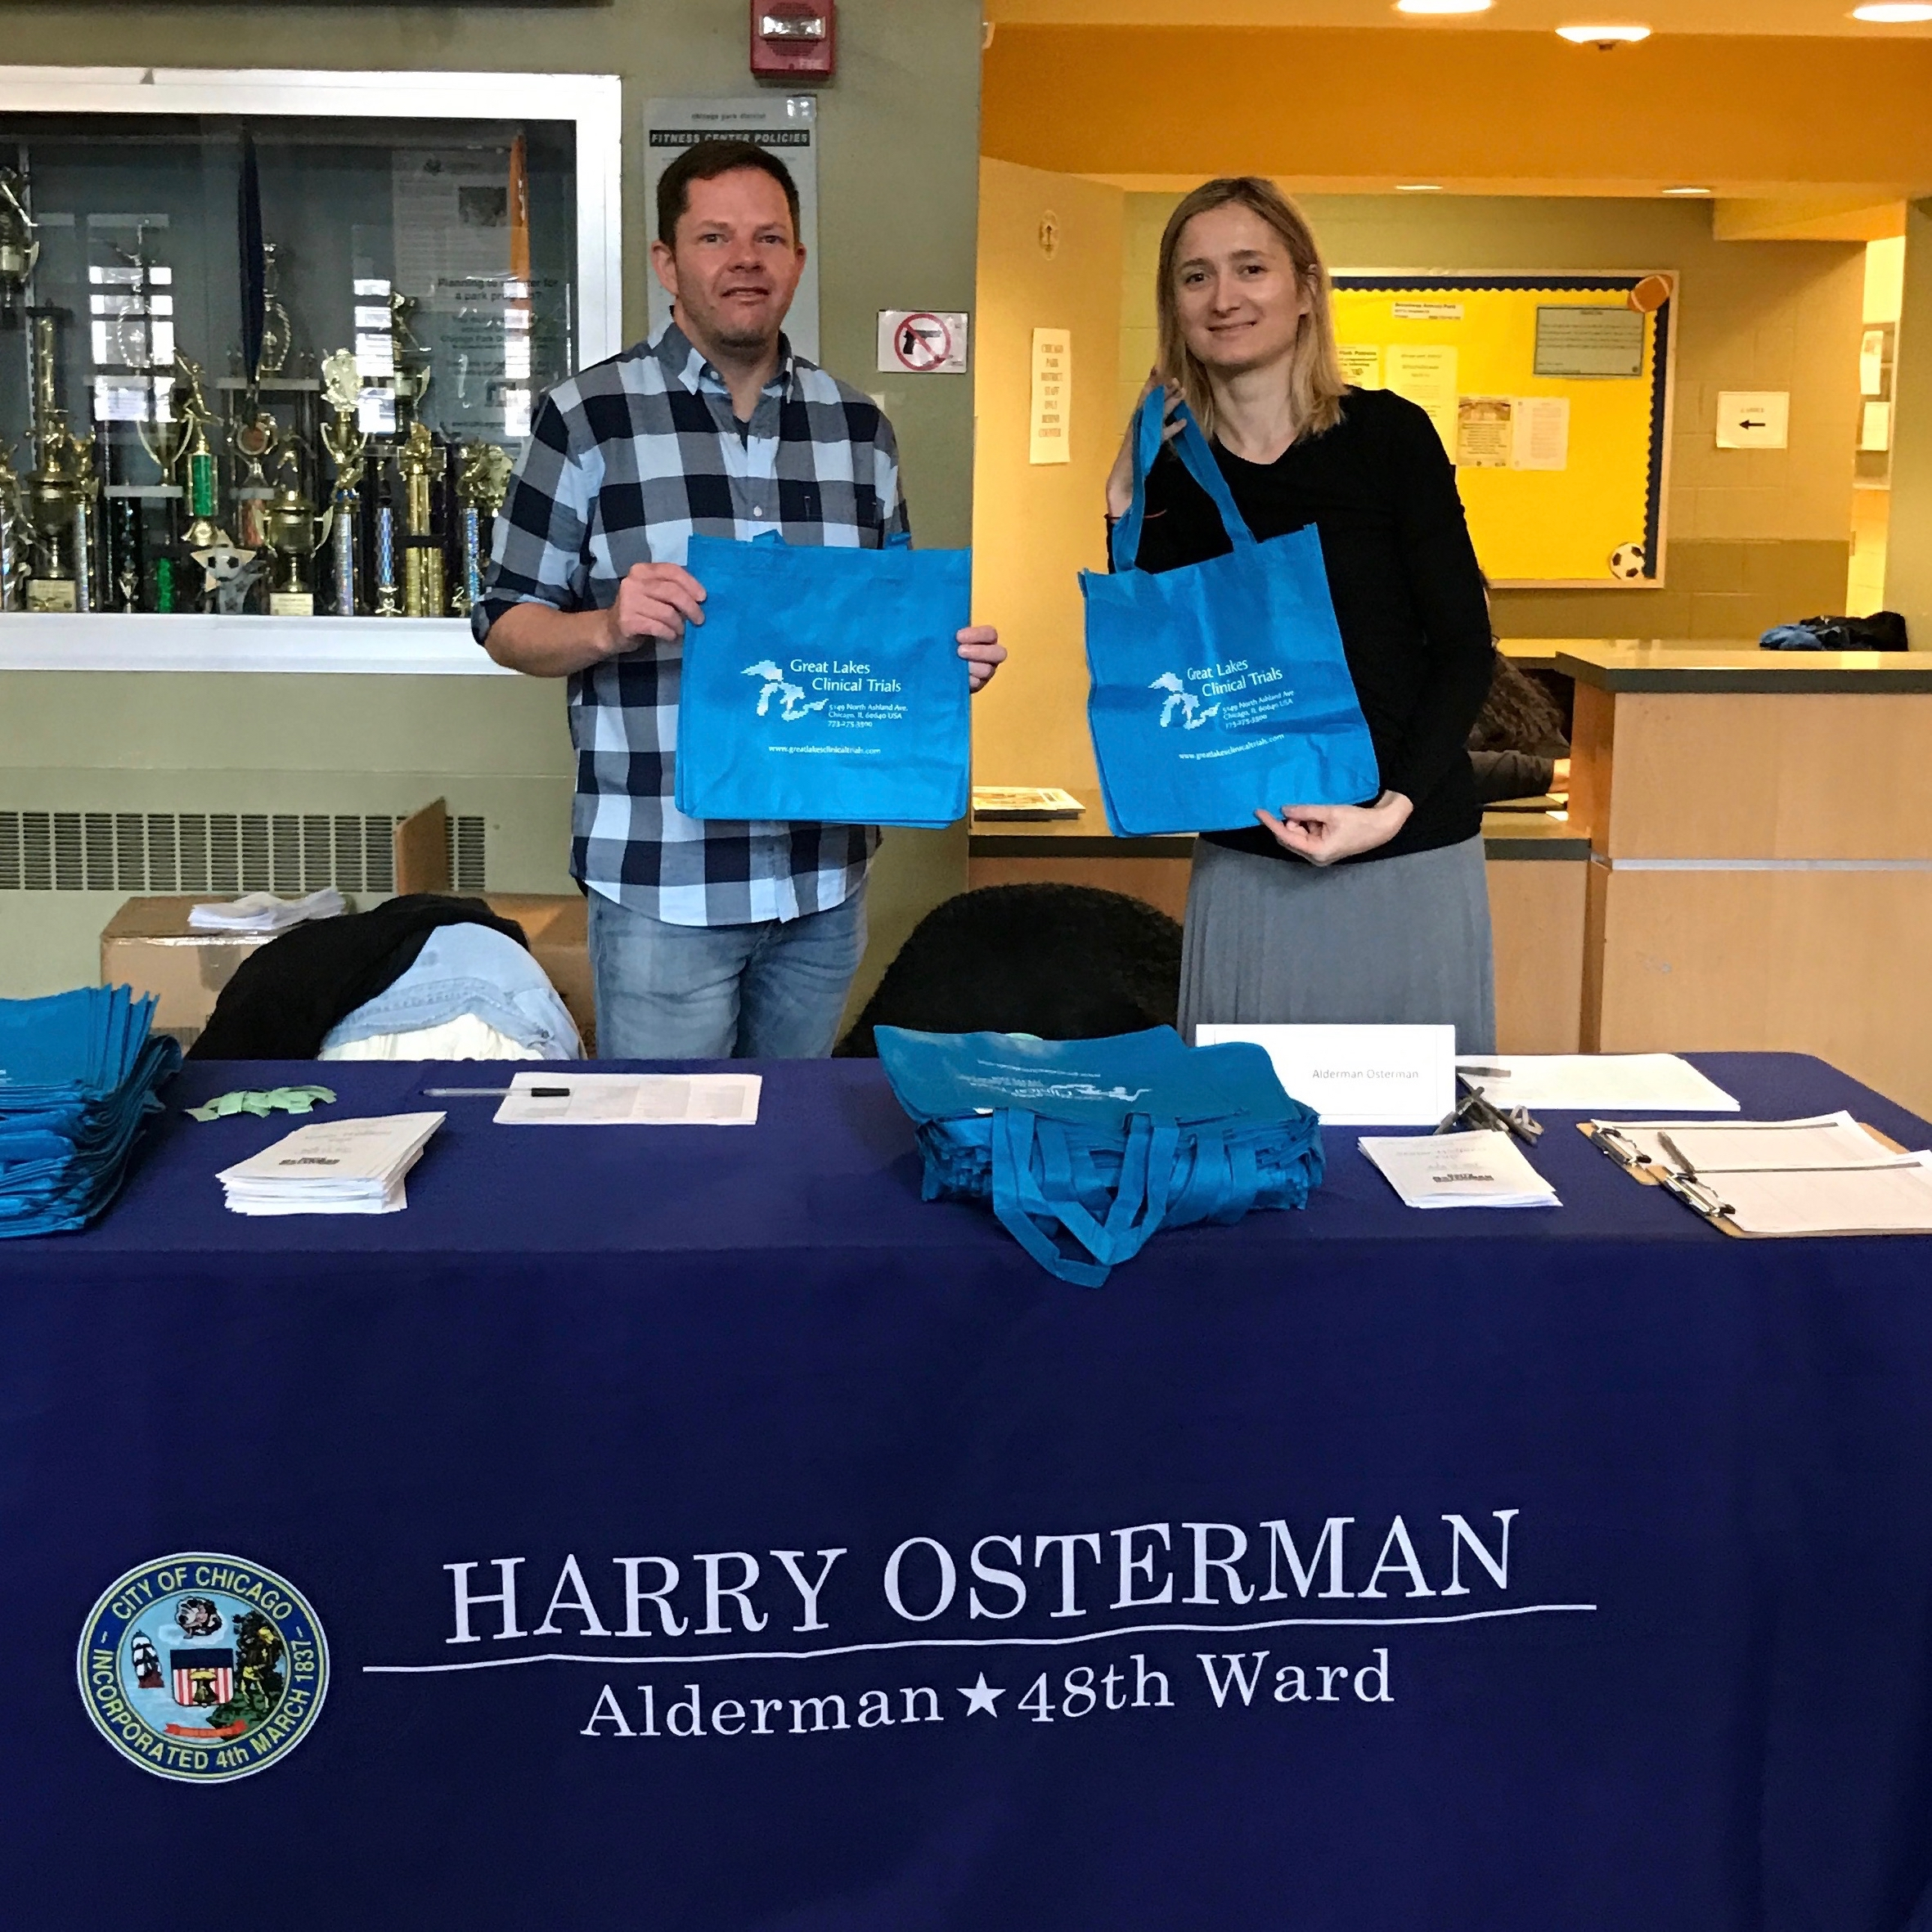 48th Ward Team Members Displaying Free Great Lakes Clinical Trials Tote Bags